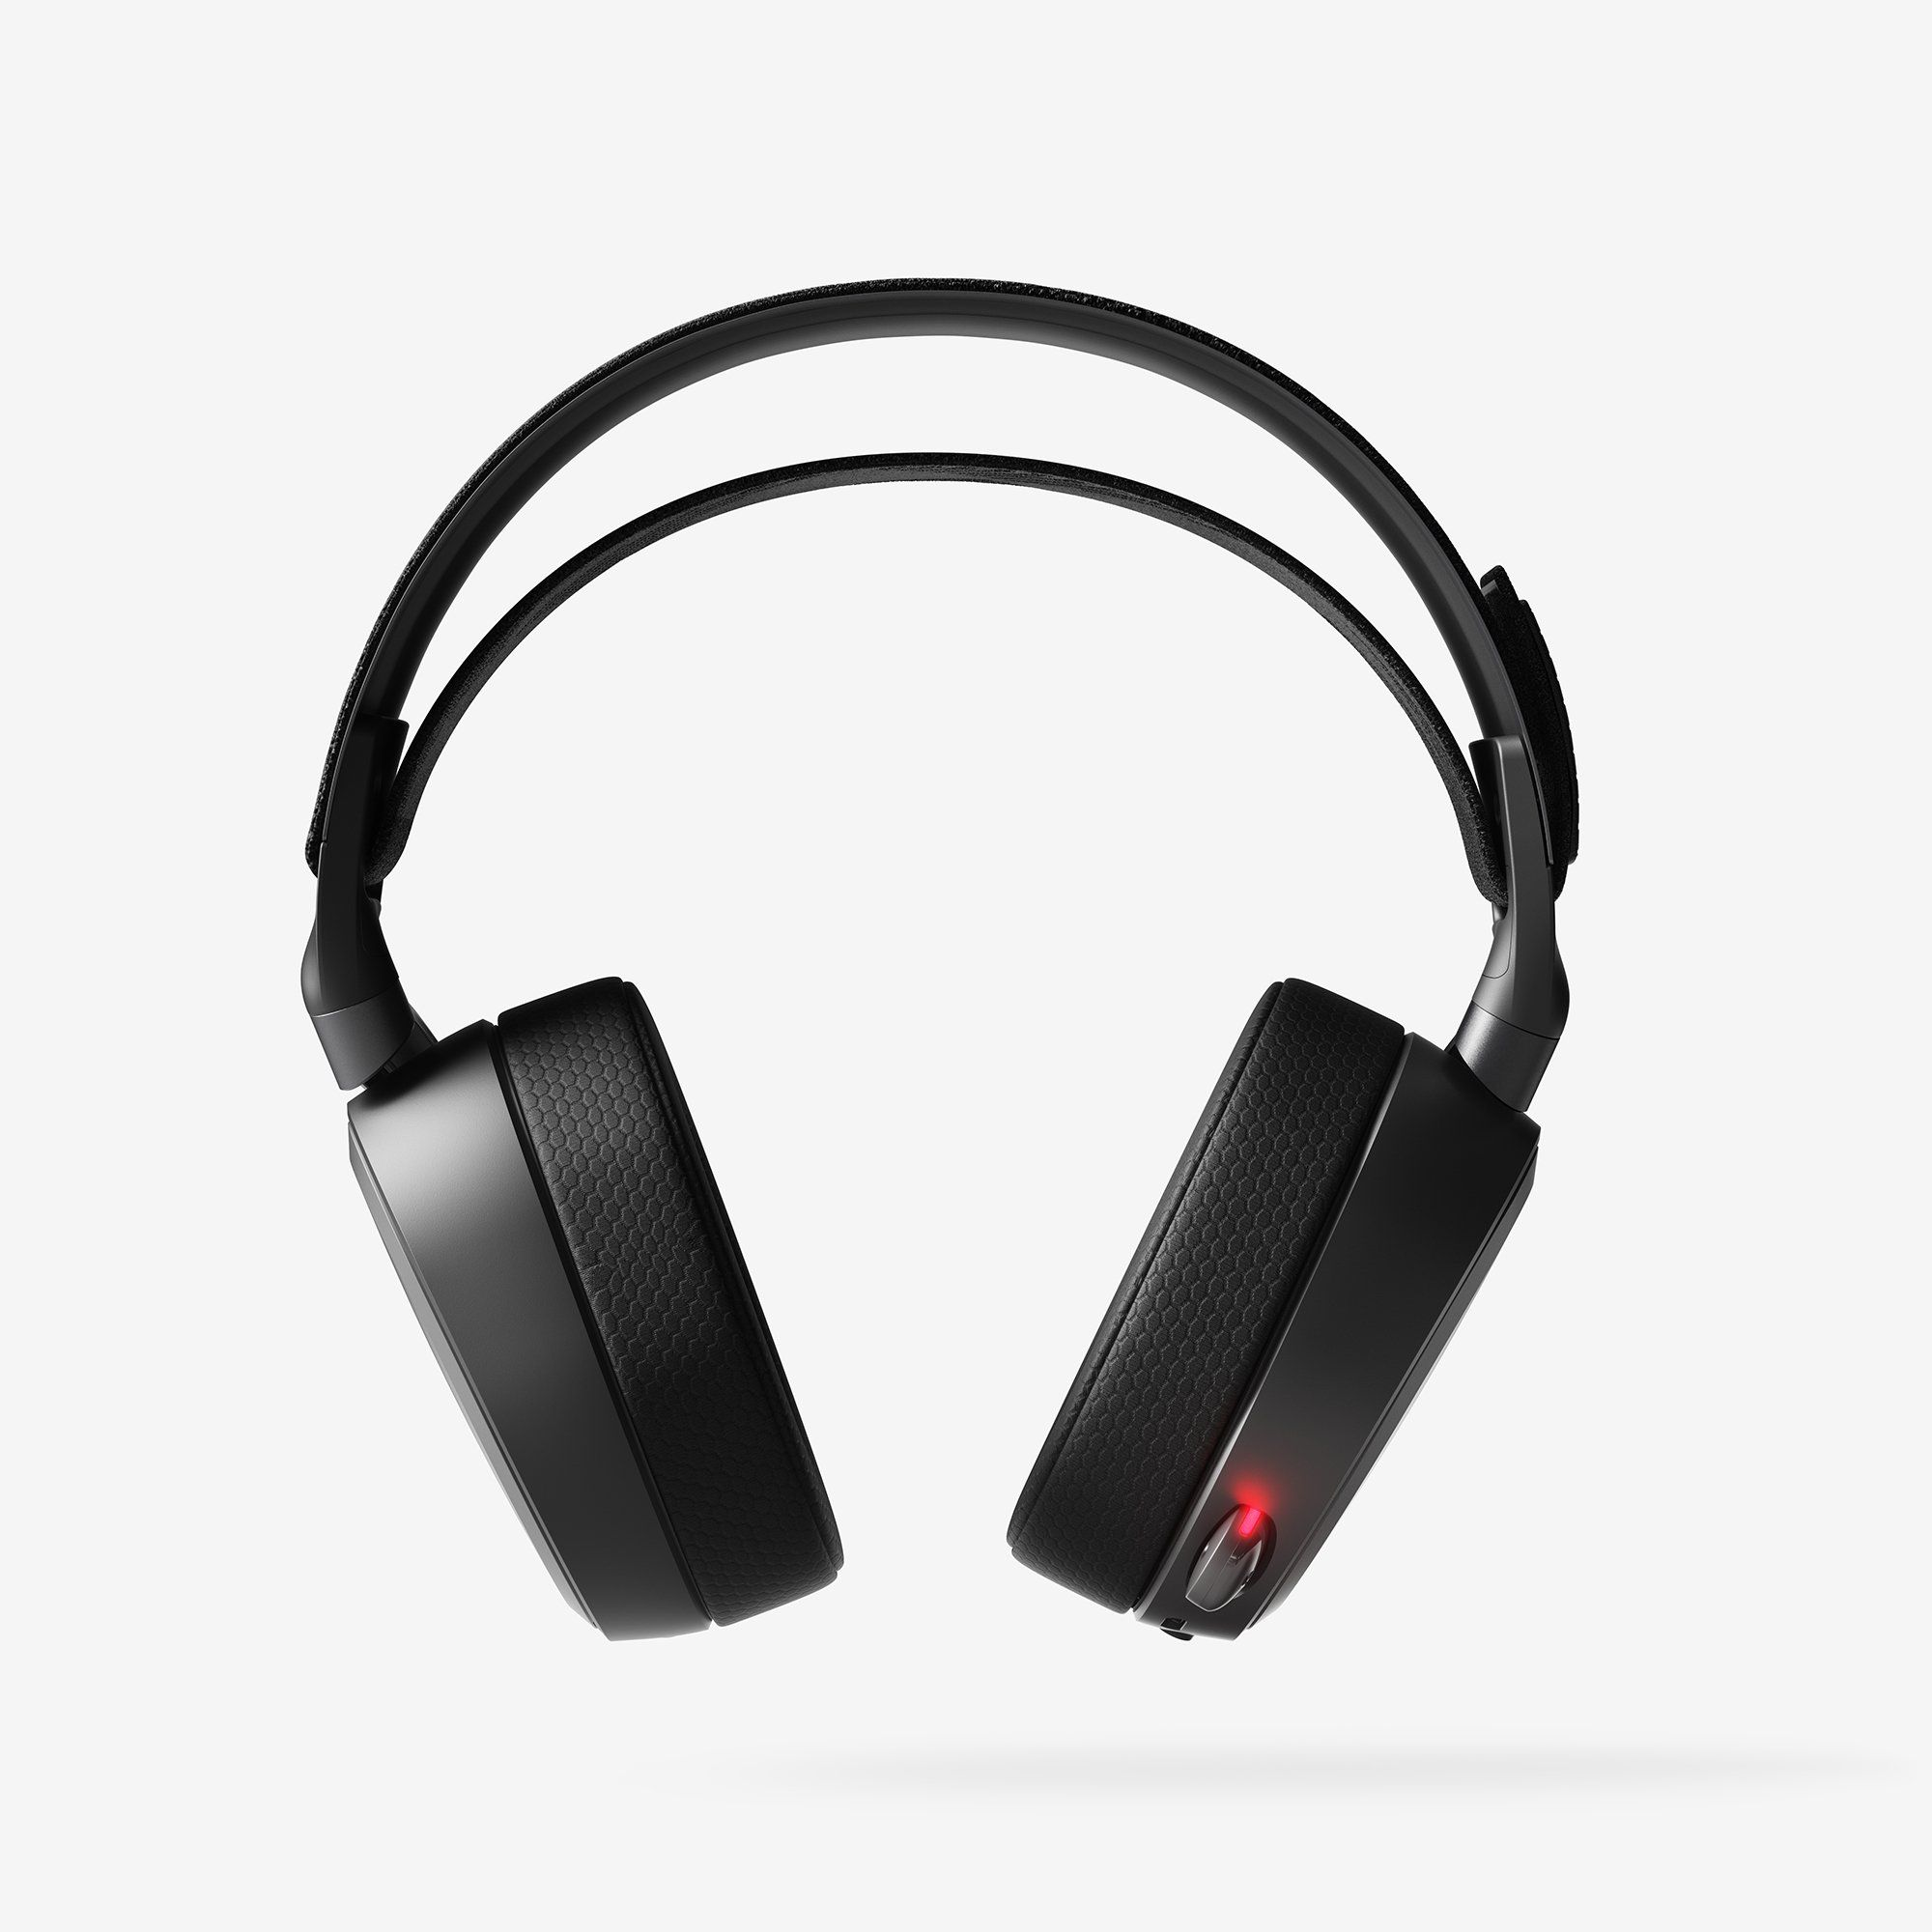 Steelseries Arctis Pro Wireless Gaming Headset Lossless High Fidelity Wireless Bluetooth For Ps4 And Pc Wireless Gaming Headset Steelseries Gaming Headset